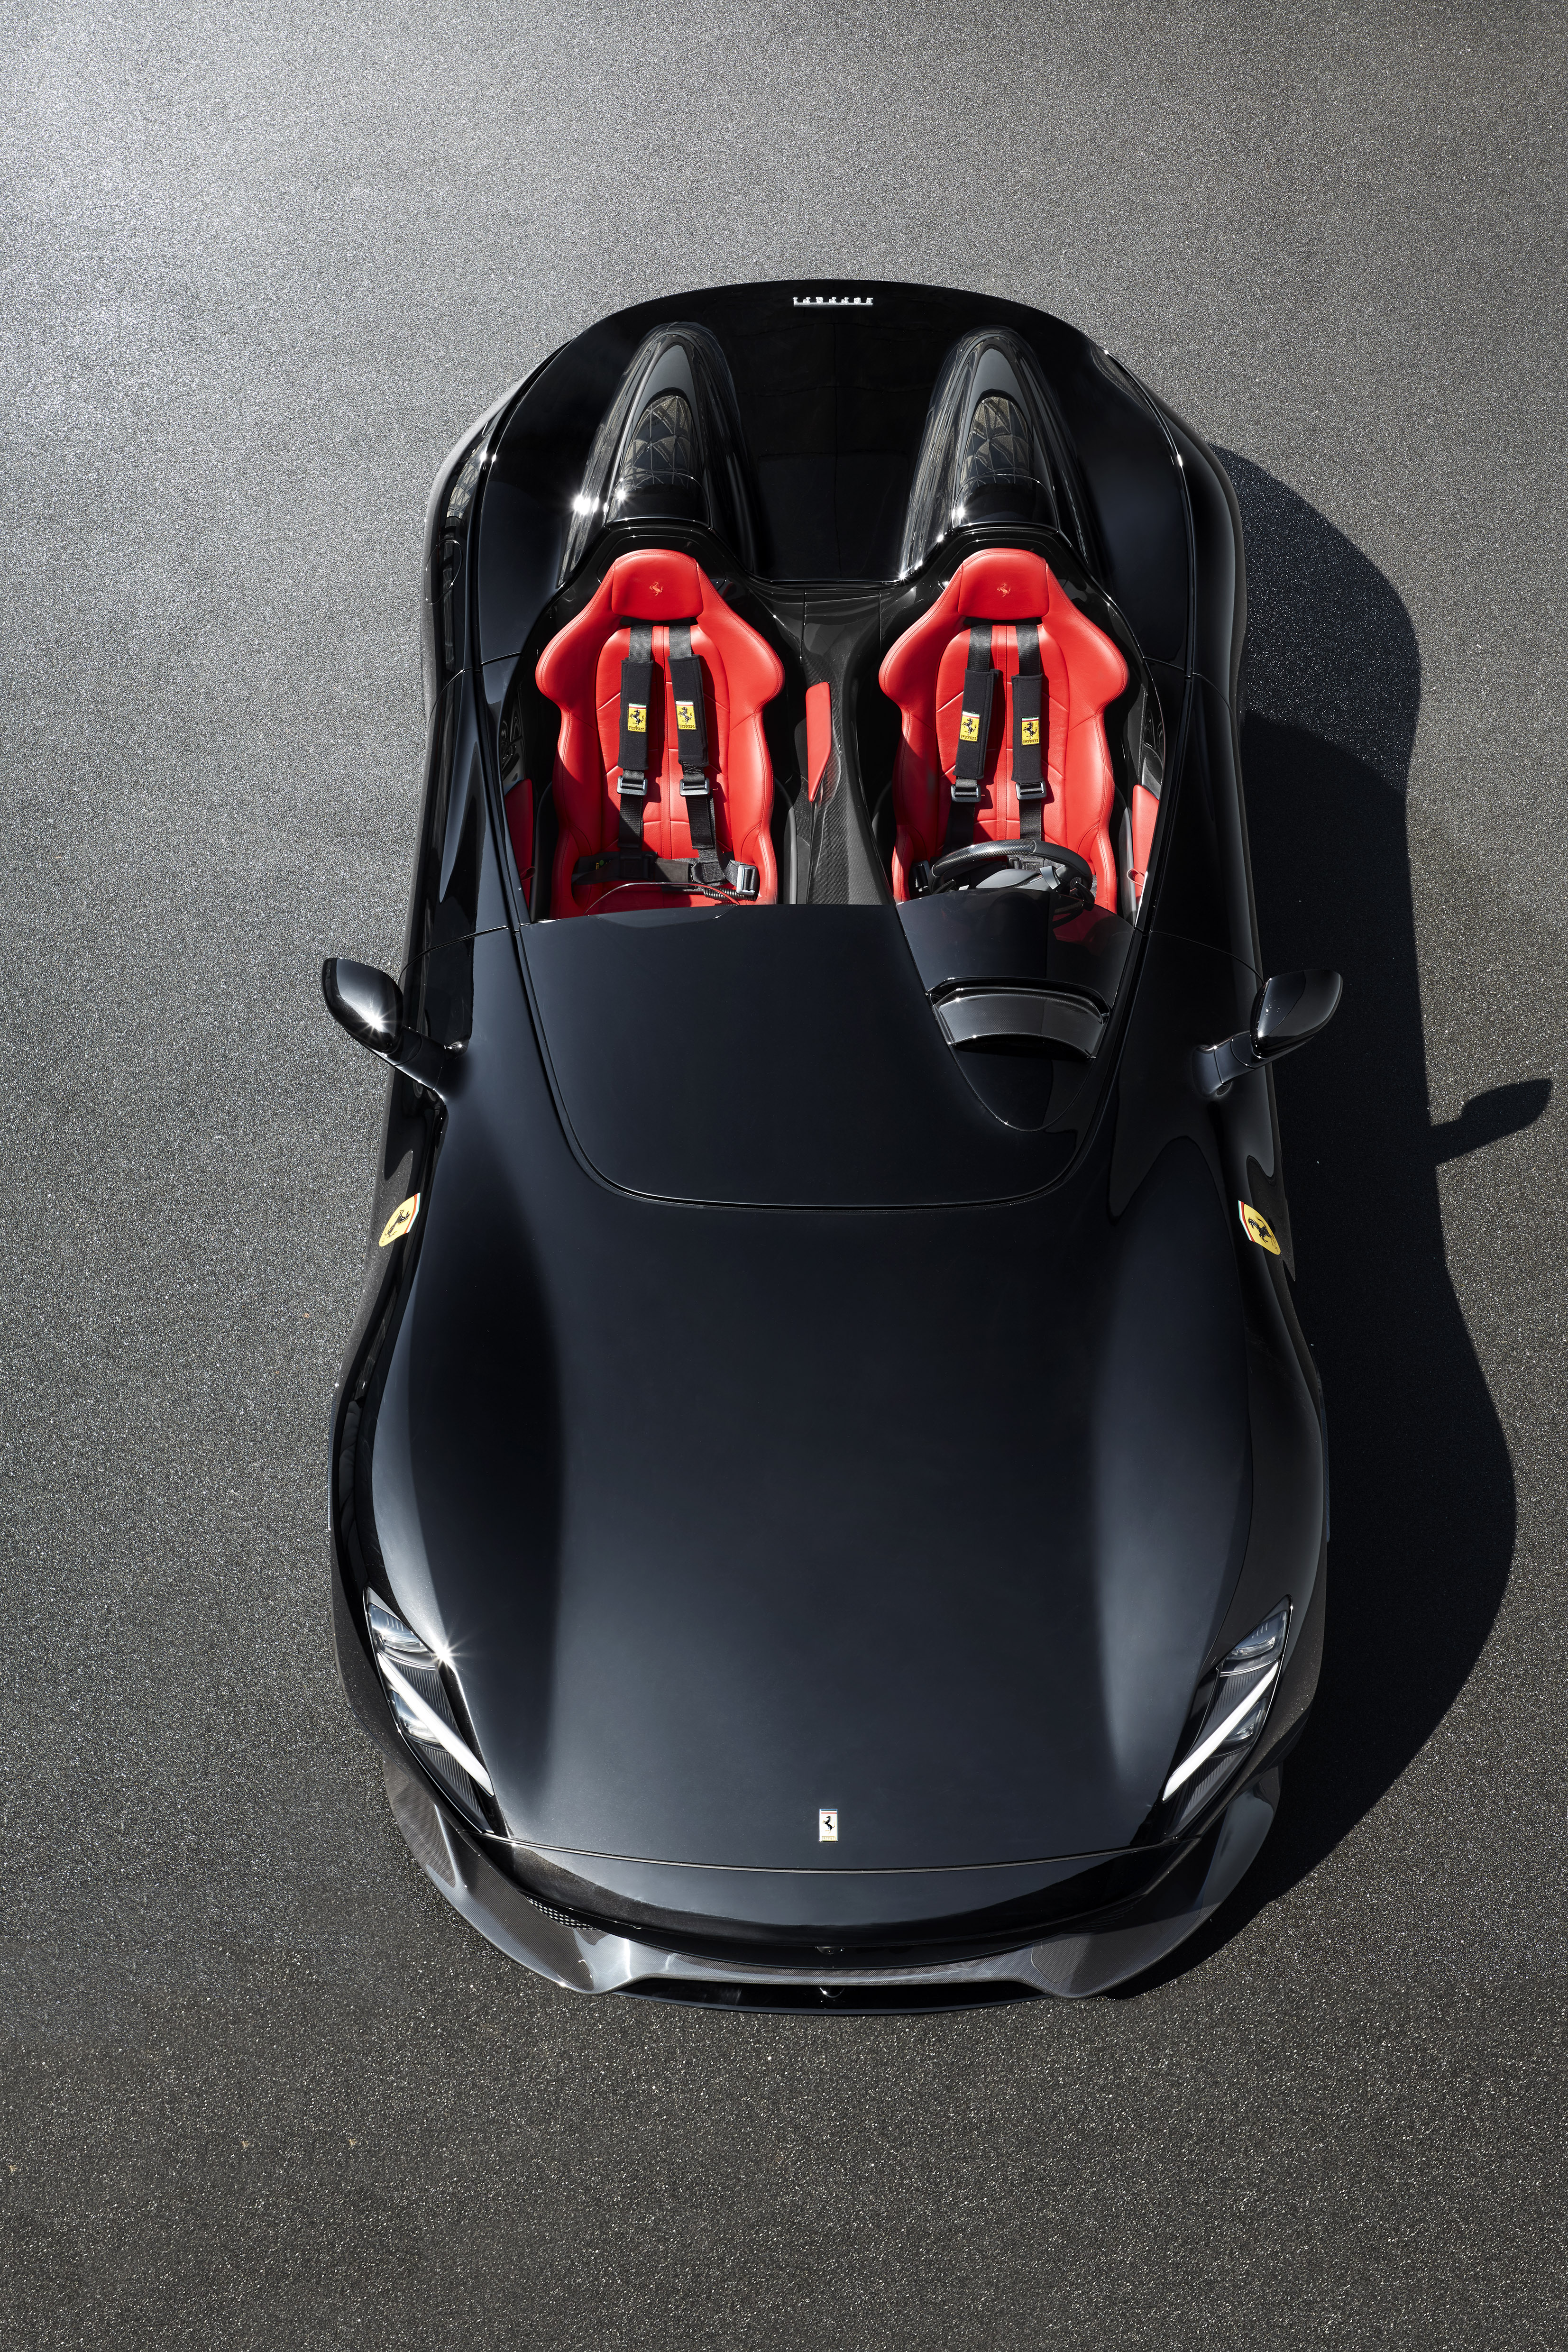 Ferrari Monza Sp1 Sp2 Unveiled The First Models In New Icona Series Video News And Reviews On Malaysian Cars Motorcycles And Automotive Lifestyle